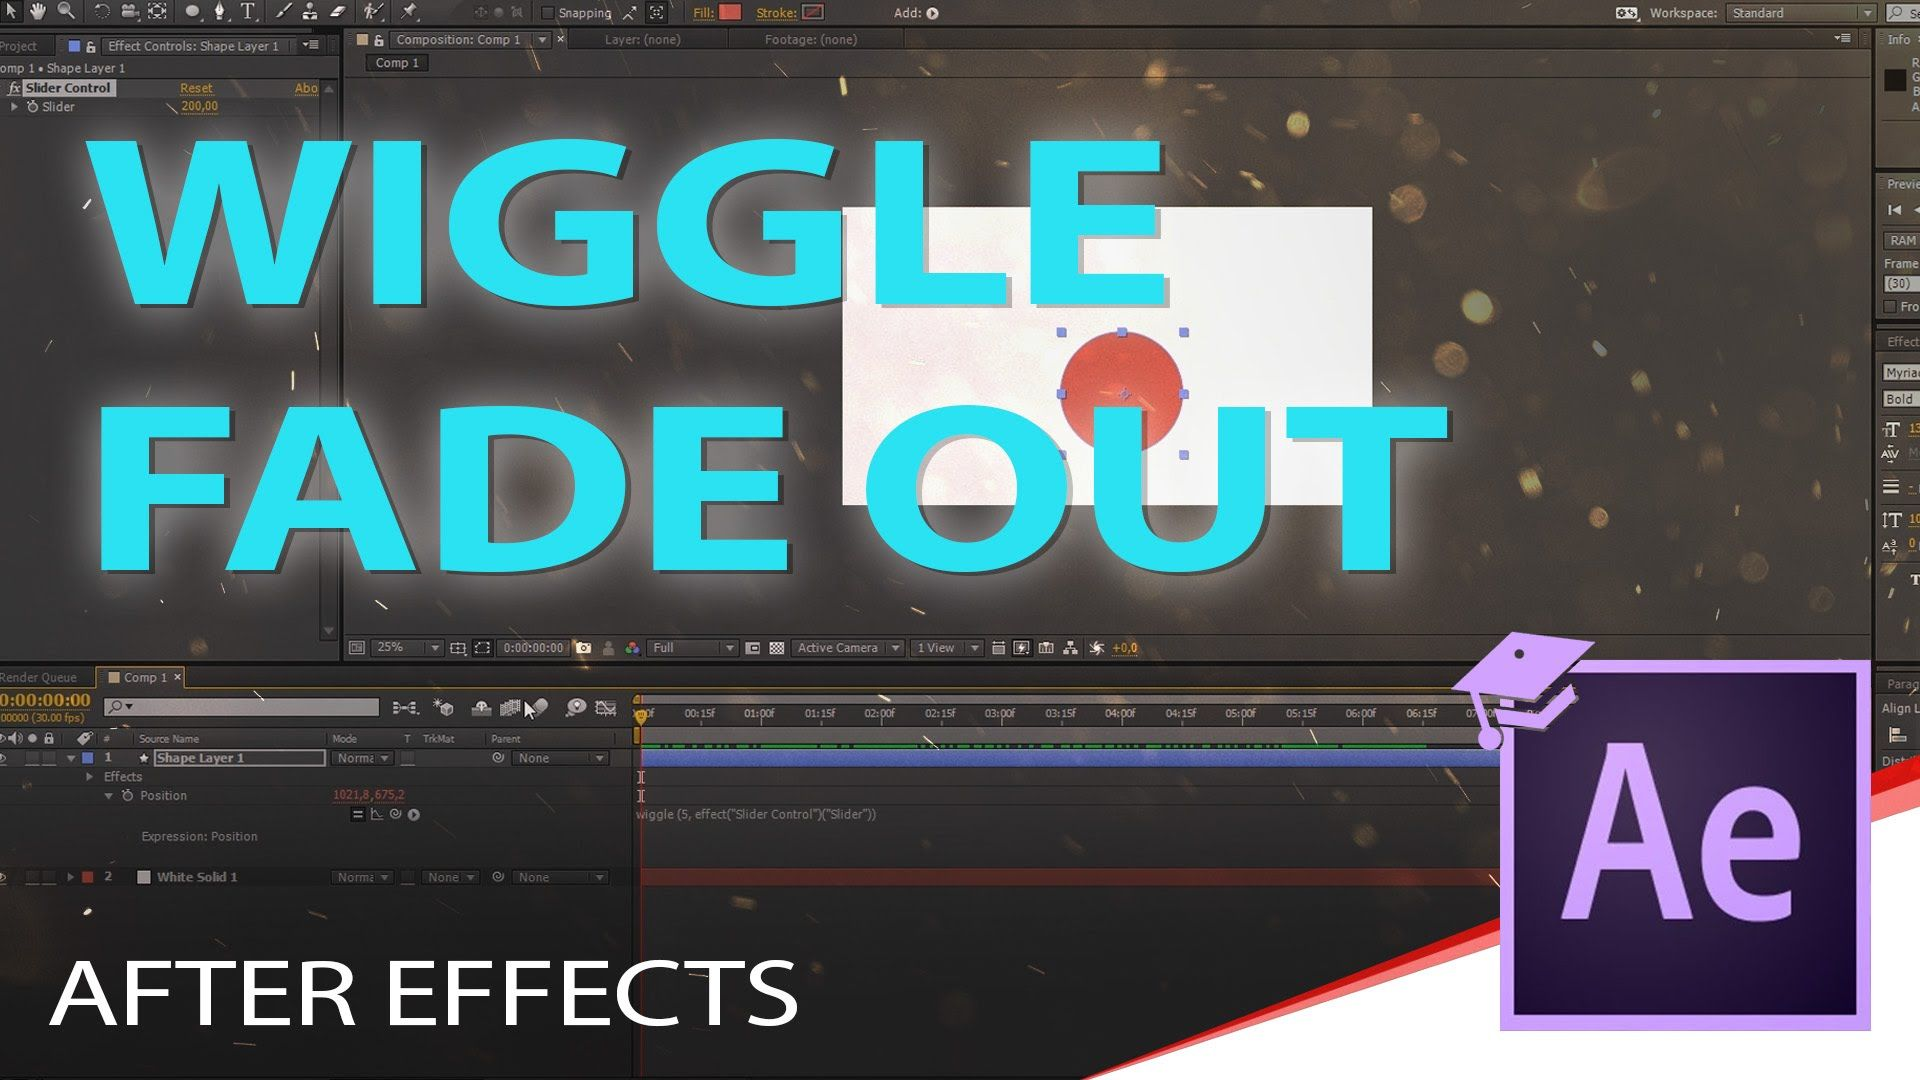 AFTER EFFECTS FADE OUT Wiggle expression - YouTube | Adobe